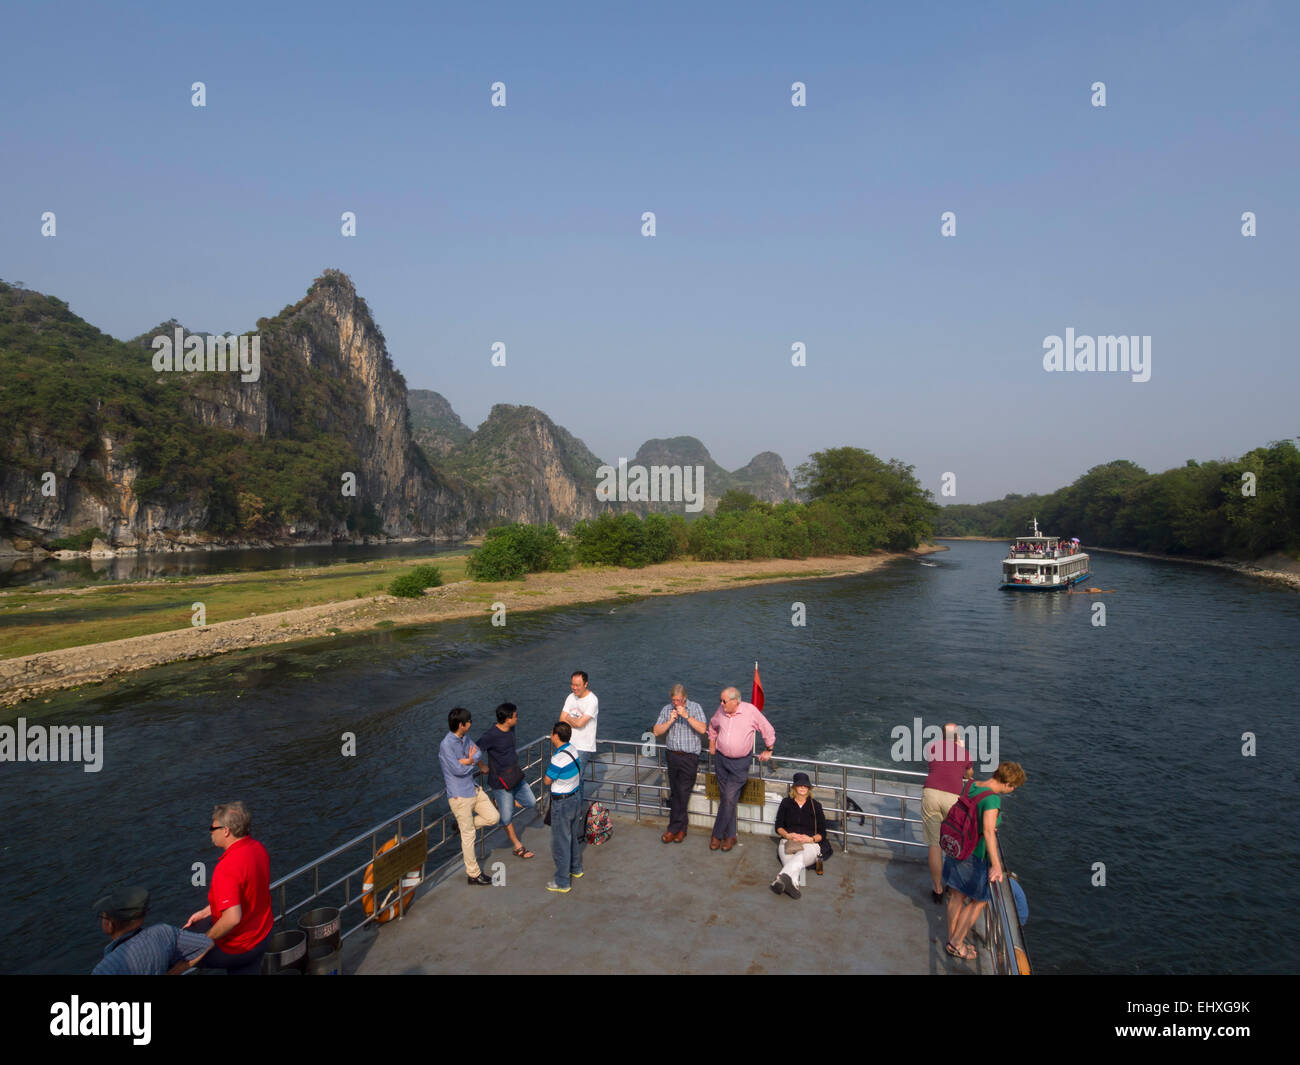 Tourist cruise boat on the Li river near Yangshuo, Guilin, China Stock Photo